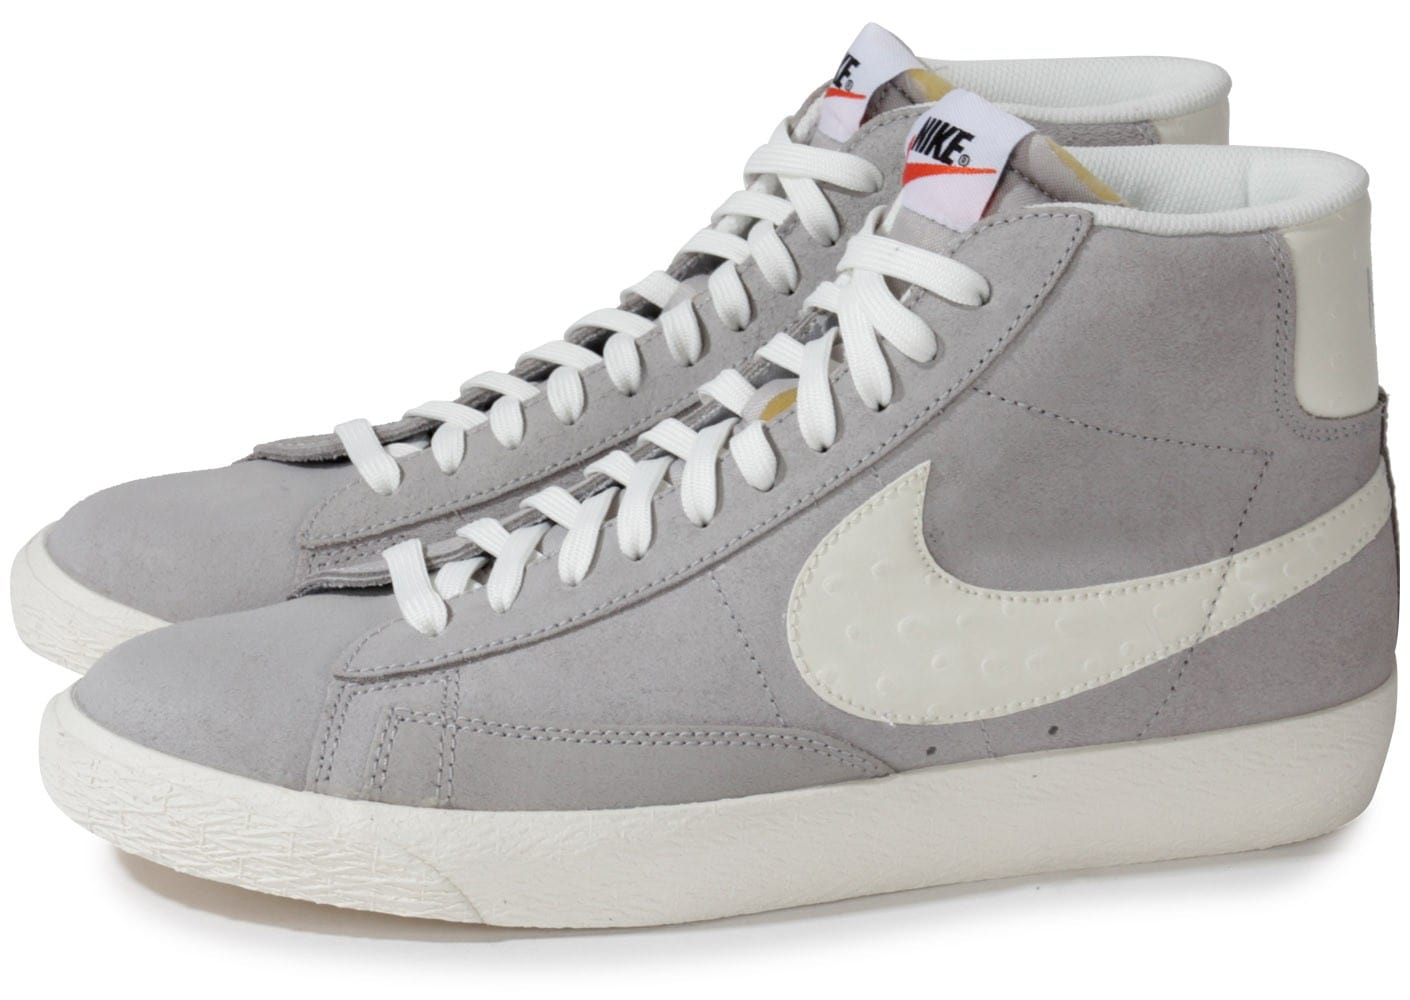 nike blazer mid grise chaussures homme chausport. Black Bedroom Furniture Sets. Home Design Ideas